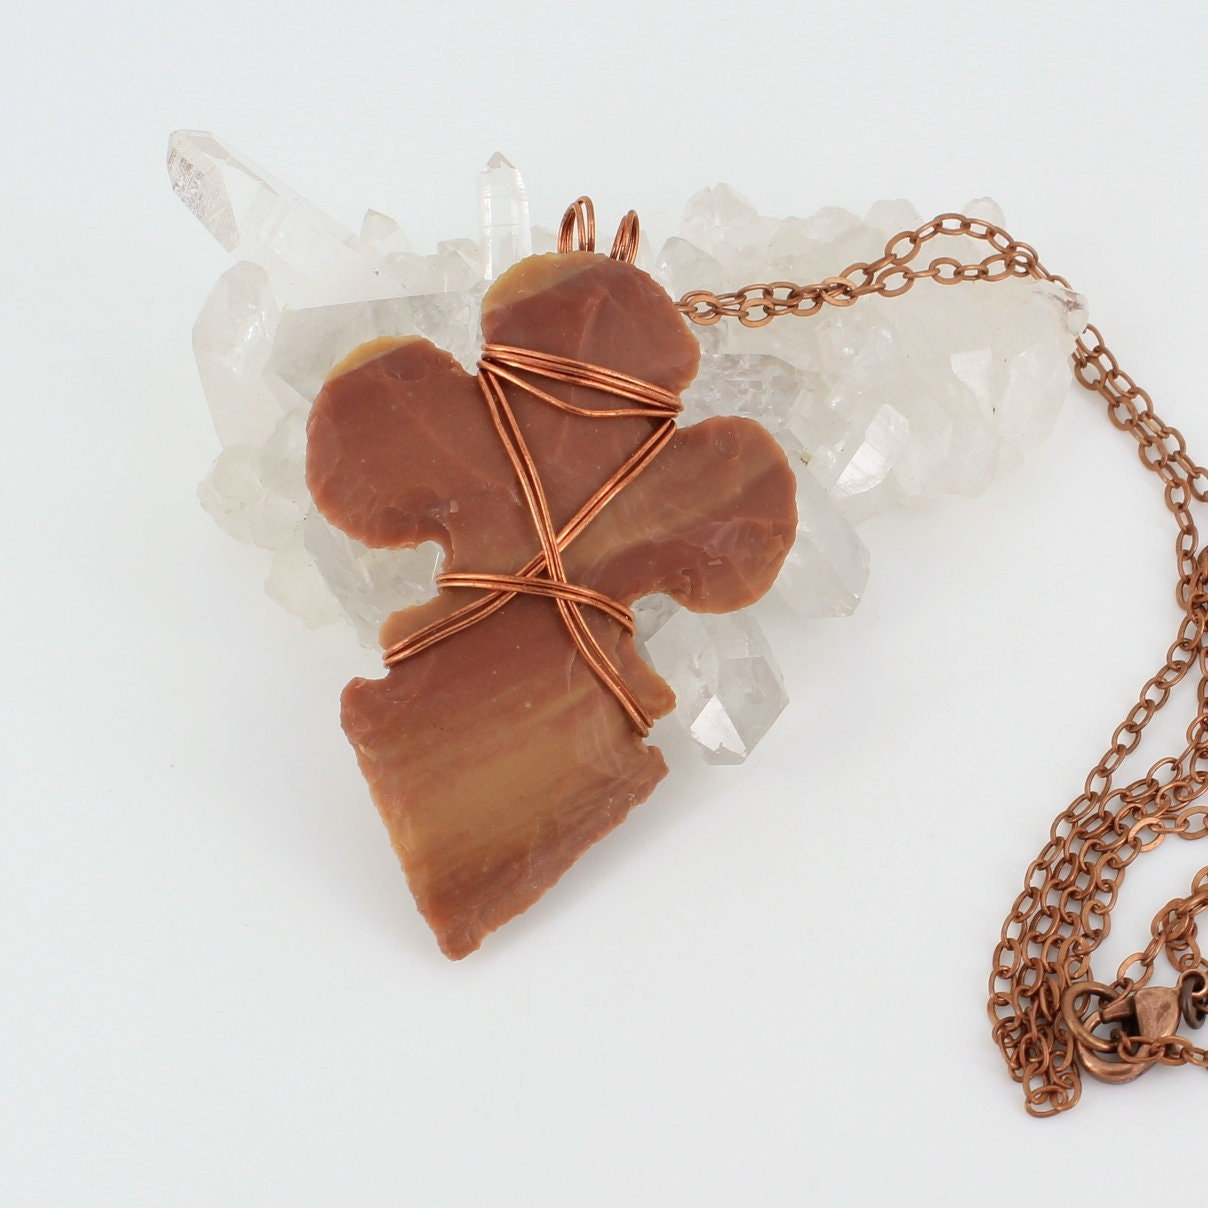 Unique,Arrowhead,Necklace,with,Copper,Jewelry,knapped_jasper,primitive_style,unisex_necklace,arrowhead_necklace,mens_necklace,wired_arrowhead,copper_wire_wrapped,Native_American,wirewrapped,locally_sourced,one_of_a_kind,Rusty_brown,fleur_de_lis,Brass,Stone